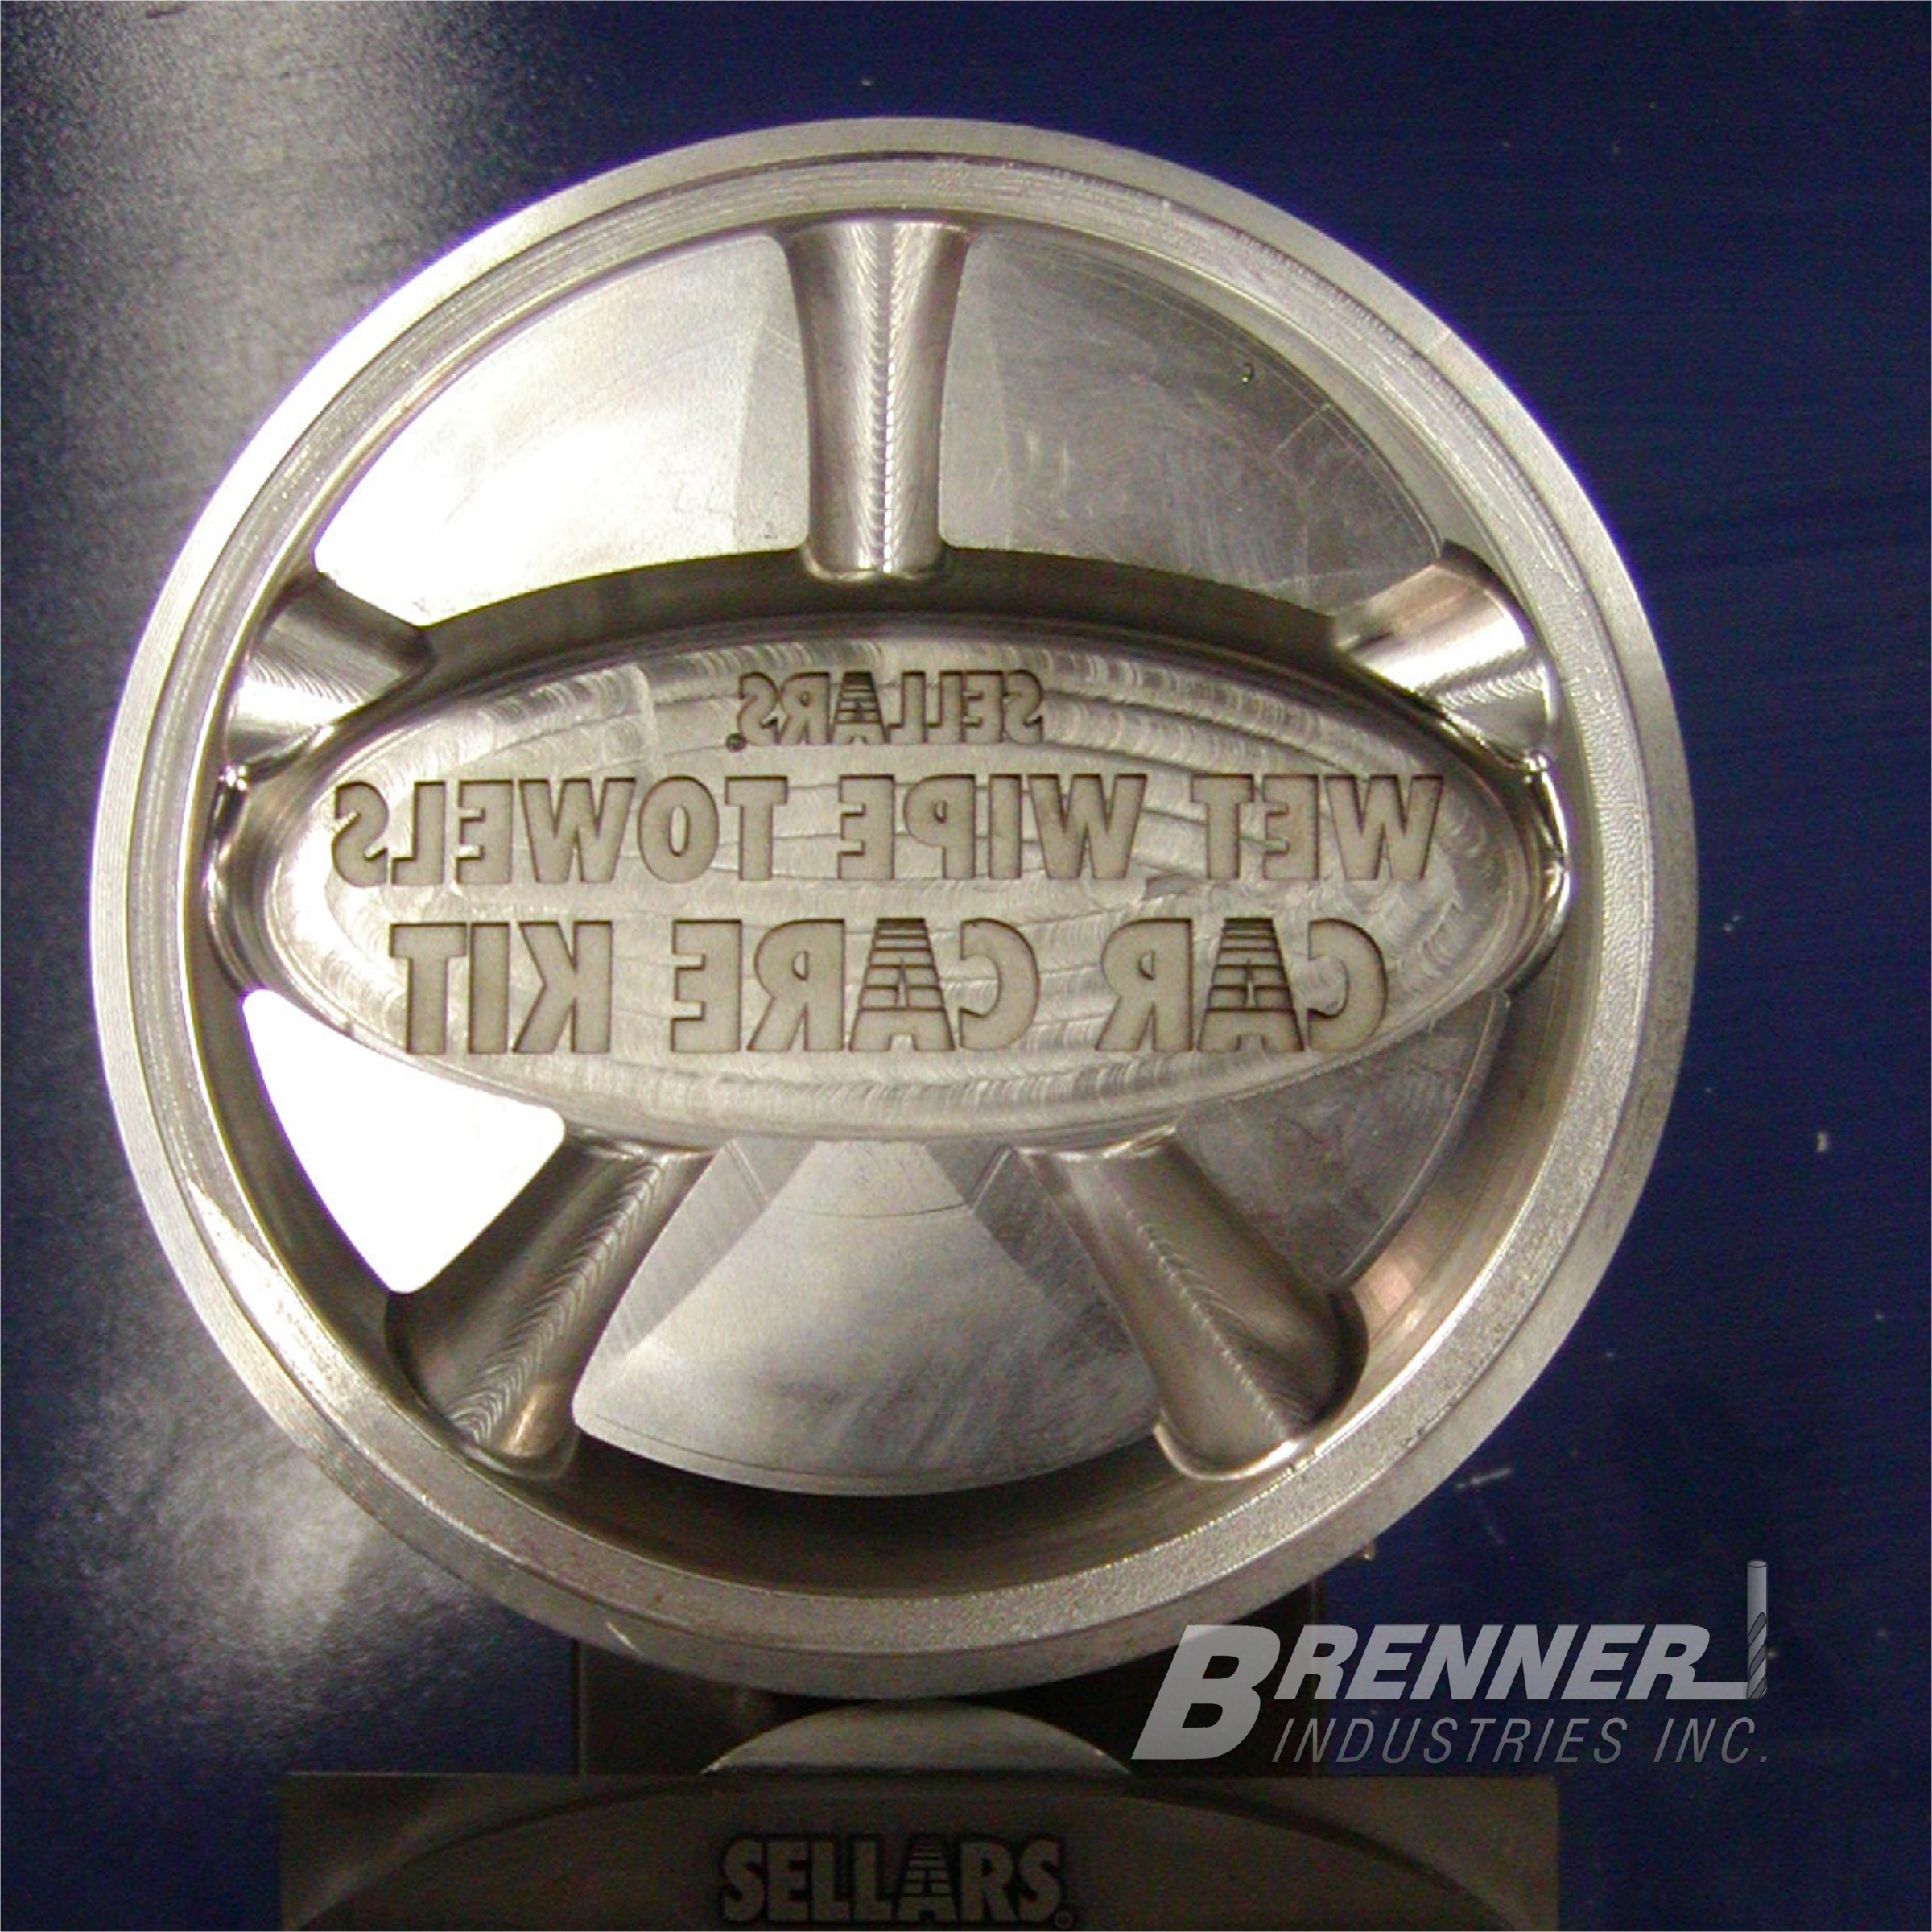 Brenner Industries Industrial Mold Die Tool Stamping Machining Engraving Engravers Service Texture Polish Insert Inserts Components Plastic Injection Forming Metal Working Forging Cast Casting Castings Automotive Firearm Agricultural Cookware Marking Identification ID I.D. Part Number Logo Revision Brand Branding OEM Artwork Vector Company OEM O.E.M. Manufacturing Manufacturers Association Guild CNC EDM mill milling milled Hardened tool steel CMP PM A2 D2 S7 M4 A-2 D-2 S-7 M-4 DC-53 DC53 rapid ton tonne tonnage press draw blank blanking tooling production high multiple cavity revision core pin pins ejector instruction instructions communication communications words cutting cutter cutters hardmilling aluminum brass metal steel copper bronze work workers USA U.S.A. Milwaukee Wisconsin WI MKE Journeyman CAD CAM MasterCAM SolidWorks Master Solid 3D three dimensional modeling model direct